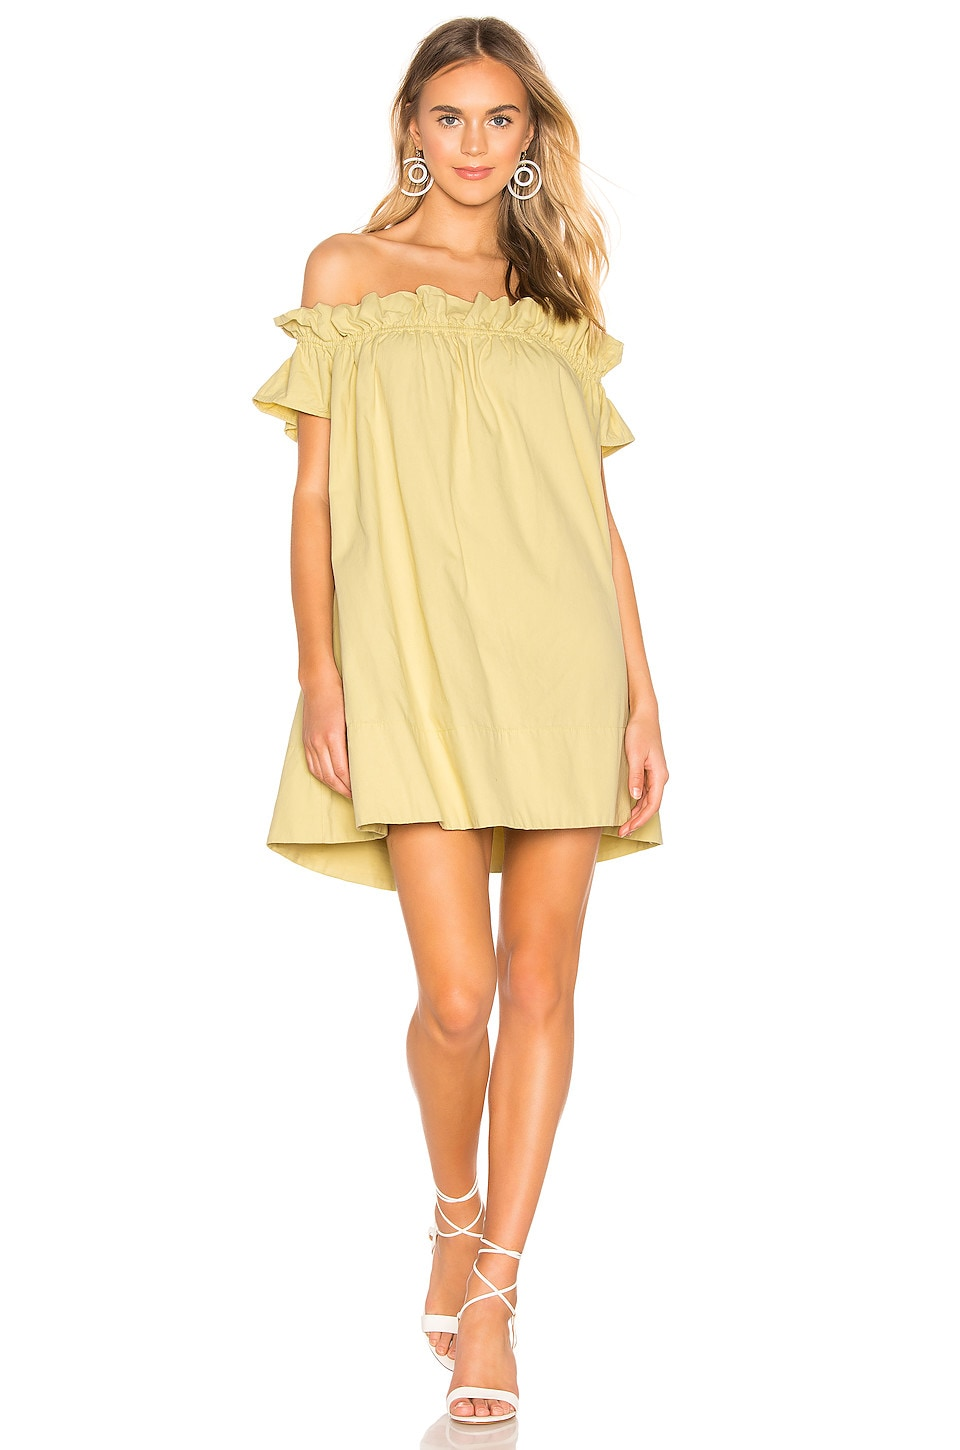 Free People Dresses FREE PEOPLE SOPHIE DRESS IN YELLOW.